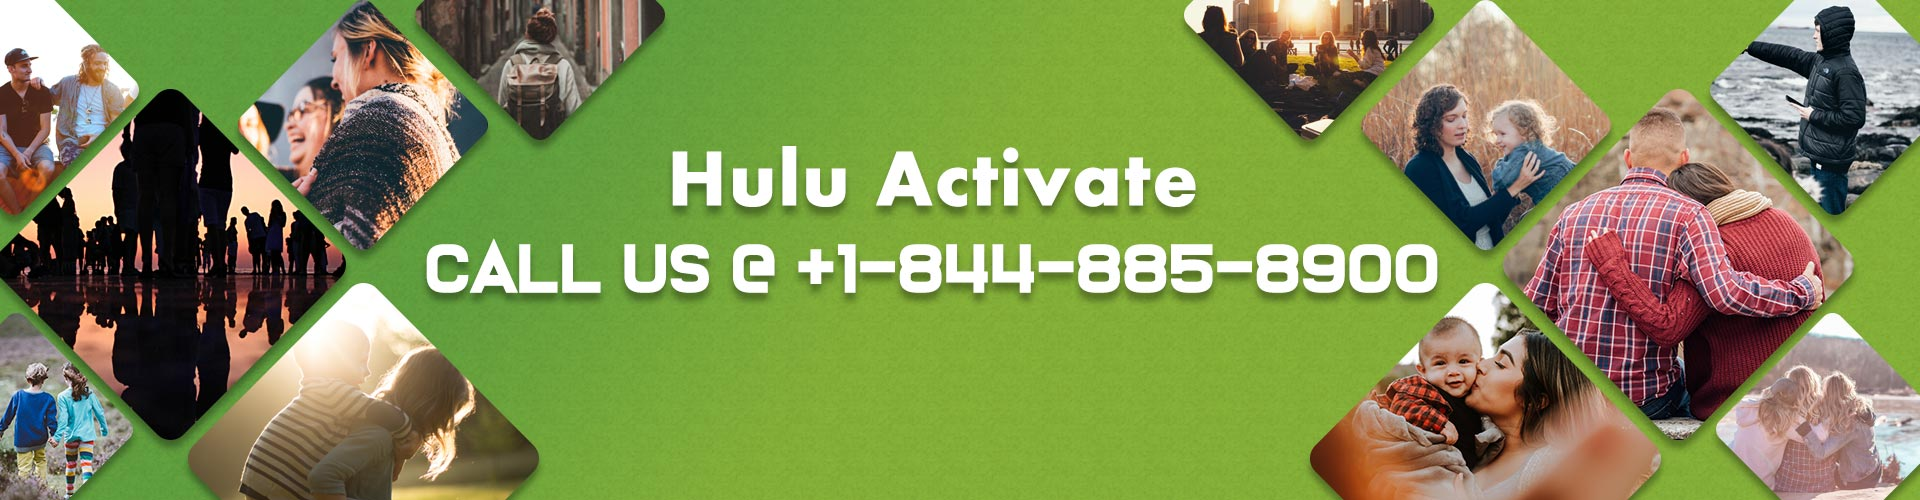 How to Stream FX Shows on Hulu? image 1